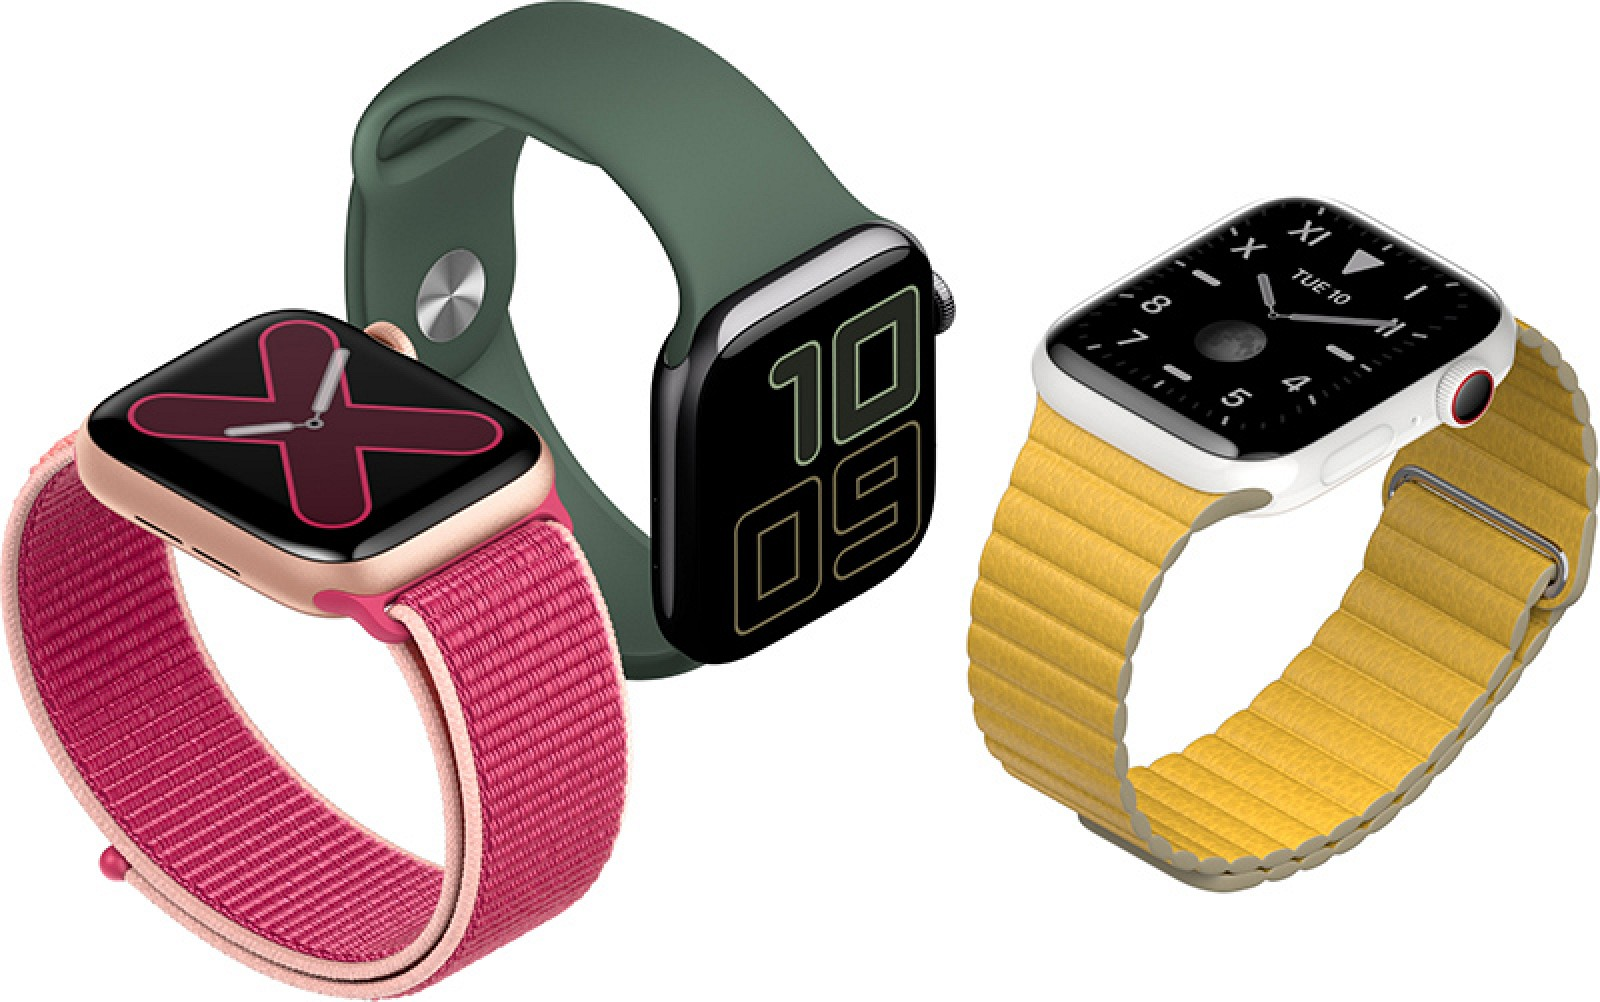 photo of Apple Watch Sales Grew to 6.8 Million Units in Q3 2019, up 51% From Last Year image